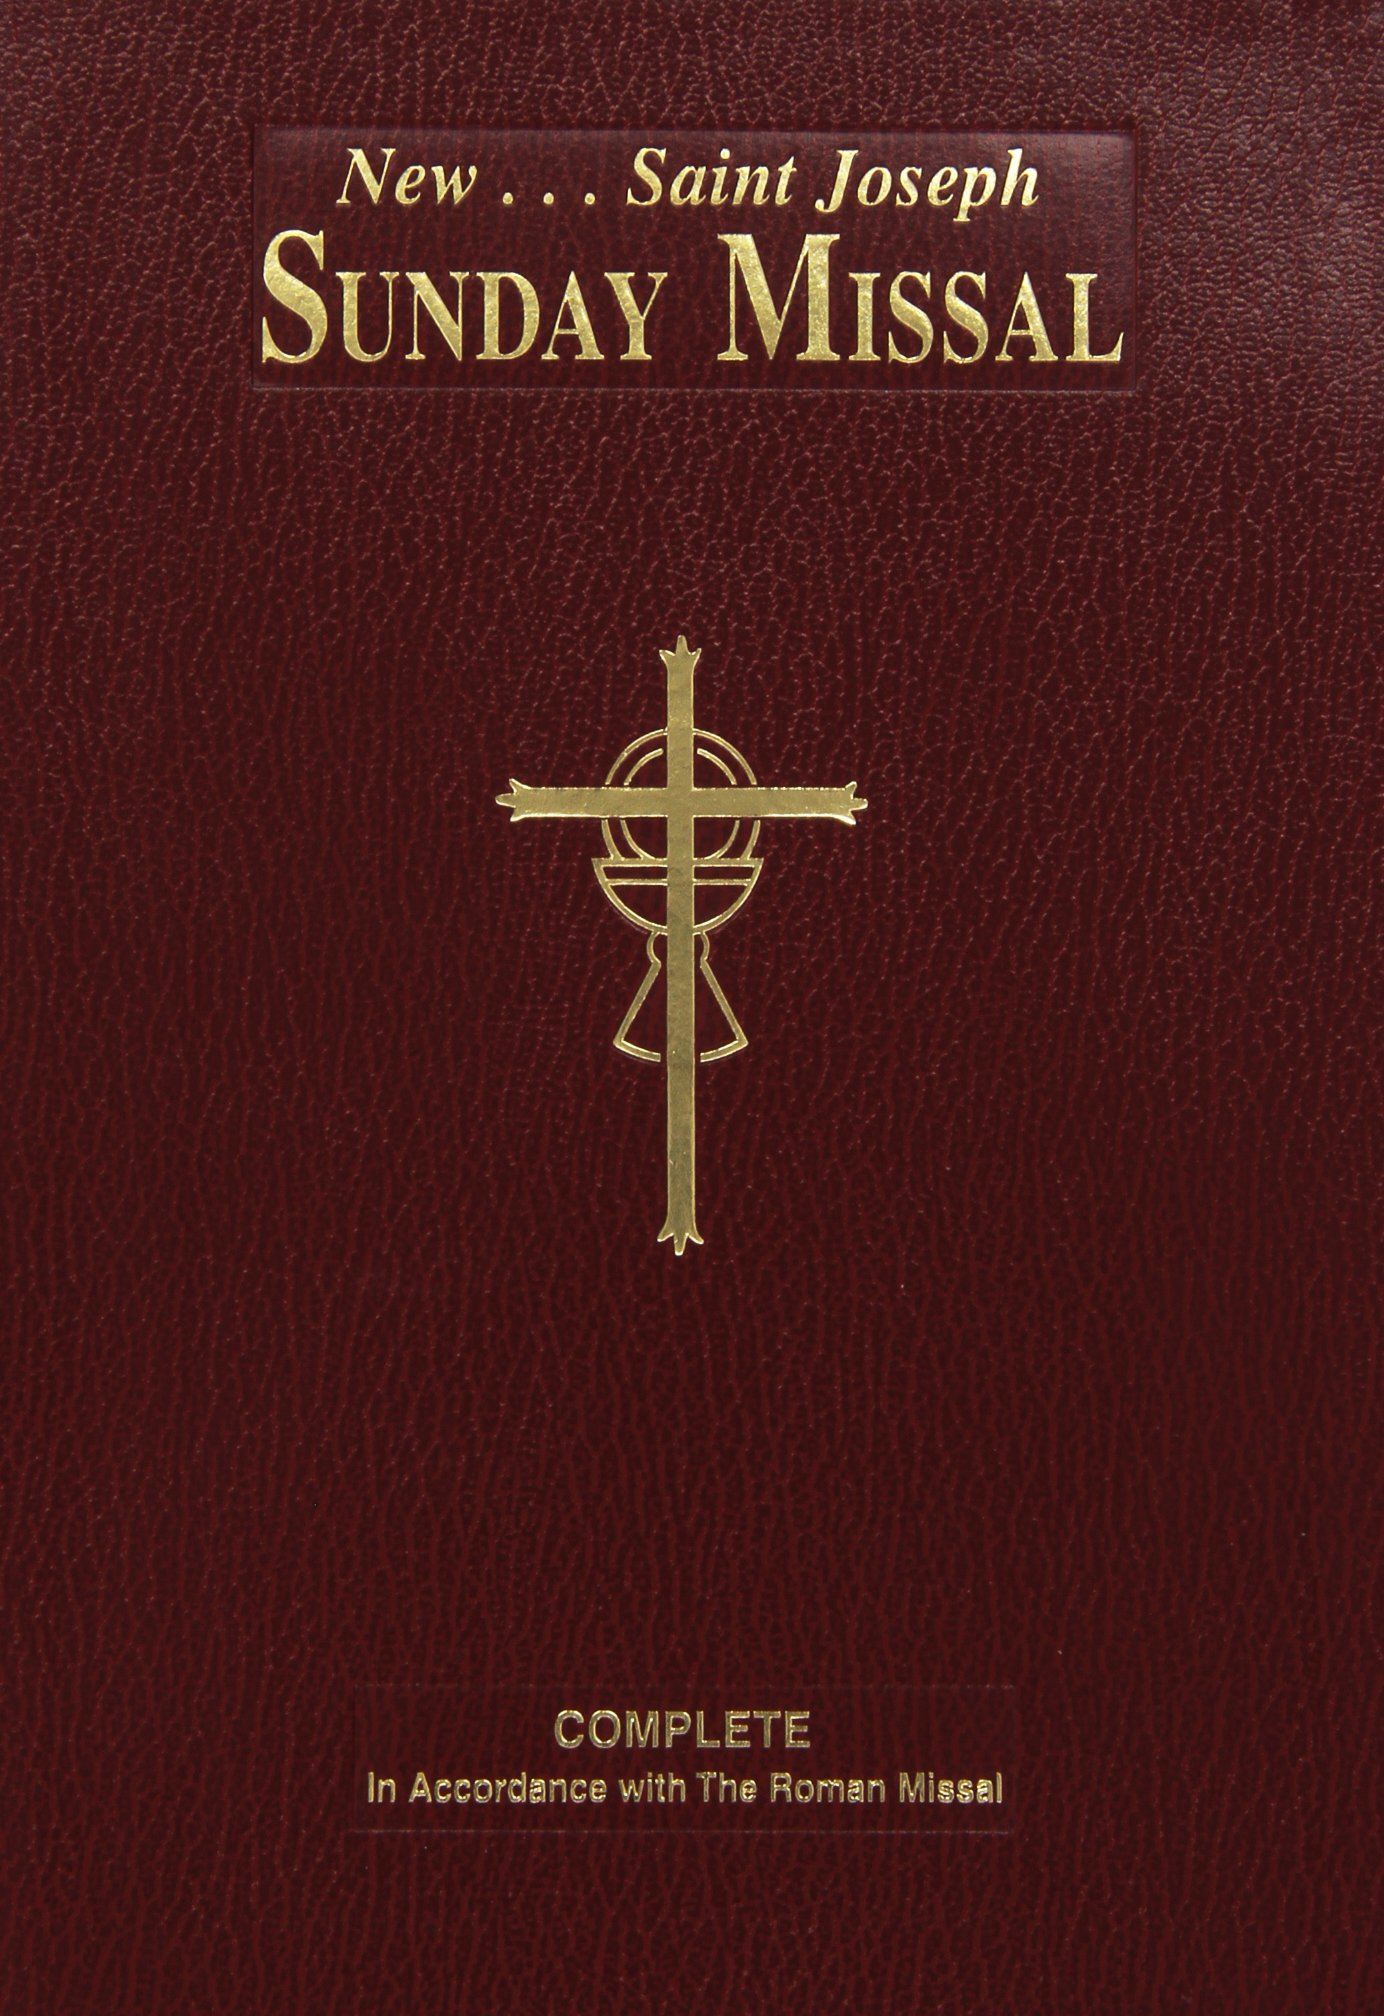 New Saint Joseph Sunday Missal: Catholic Book Publishing Co: 9780899428222:  Amazon.com: Books